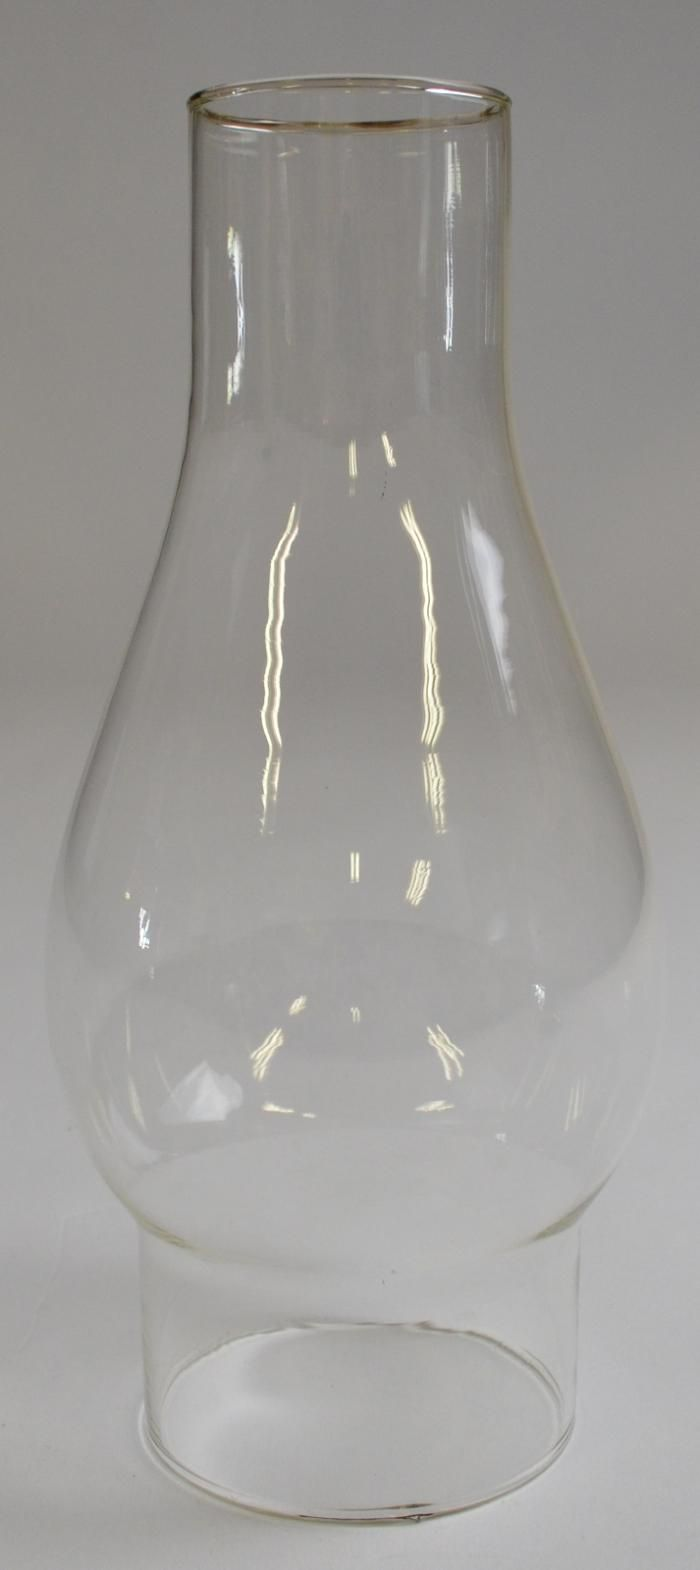 Vintage Clear Glass Smooth Top Hurricane Lamp Chimney 8 625 Tall With Images Glass Lamp Hurricane Lamps Lighting Concepts